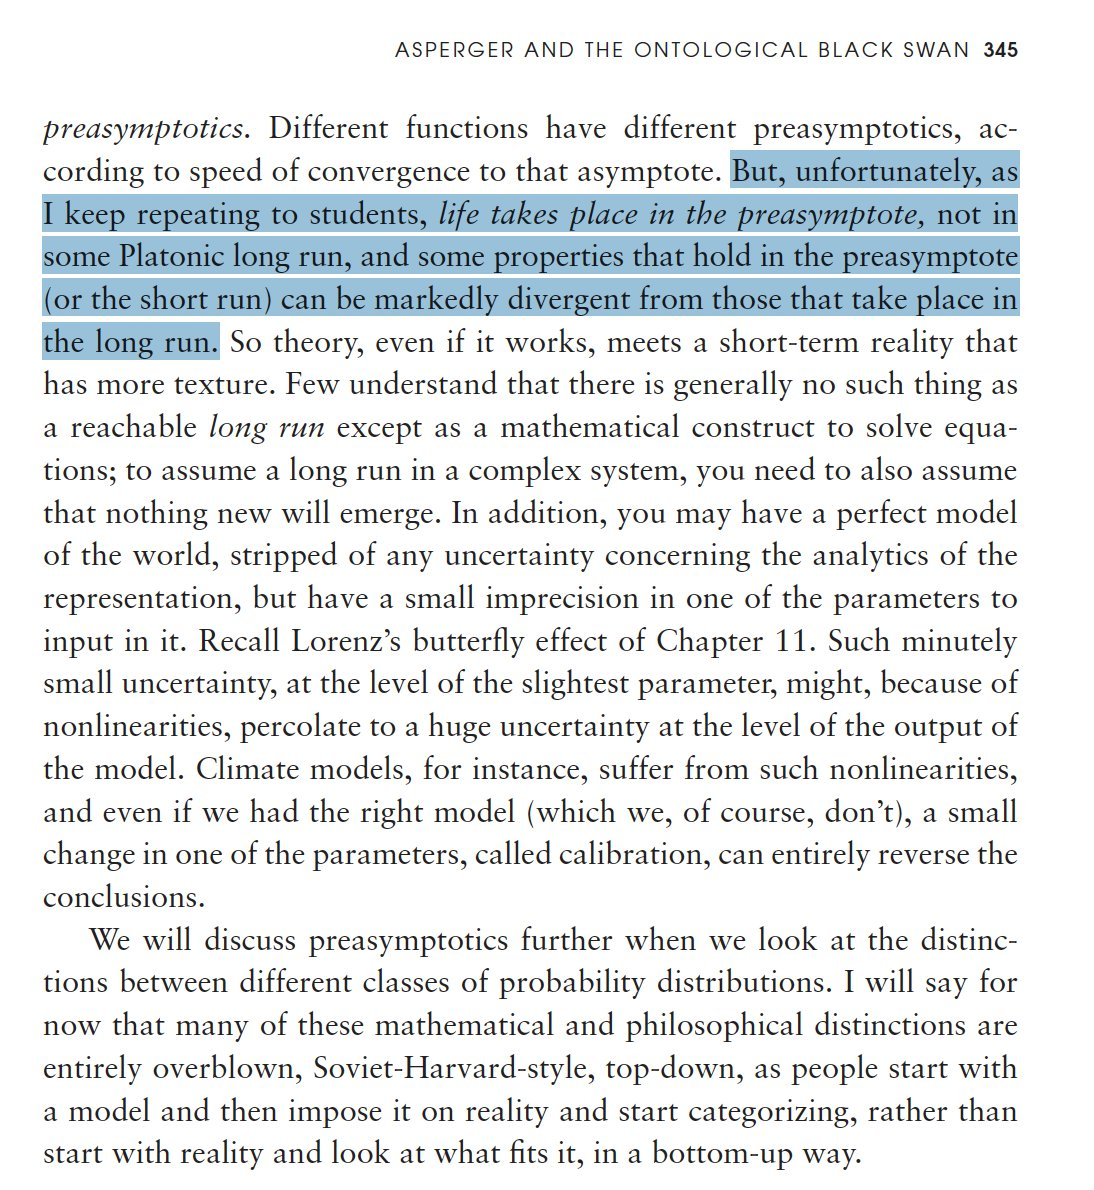 Also PREASYMPTOTICS, the topic of STAT CONS OF FAT TAILS https://t.co/nGhbvi9Ys4